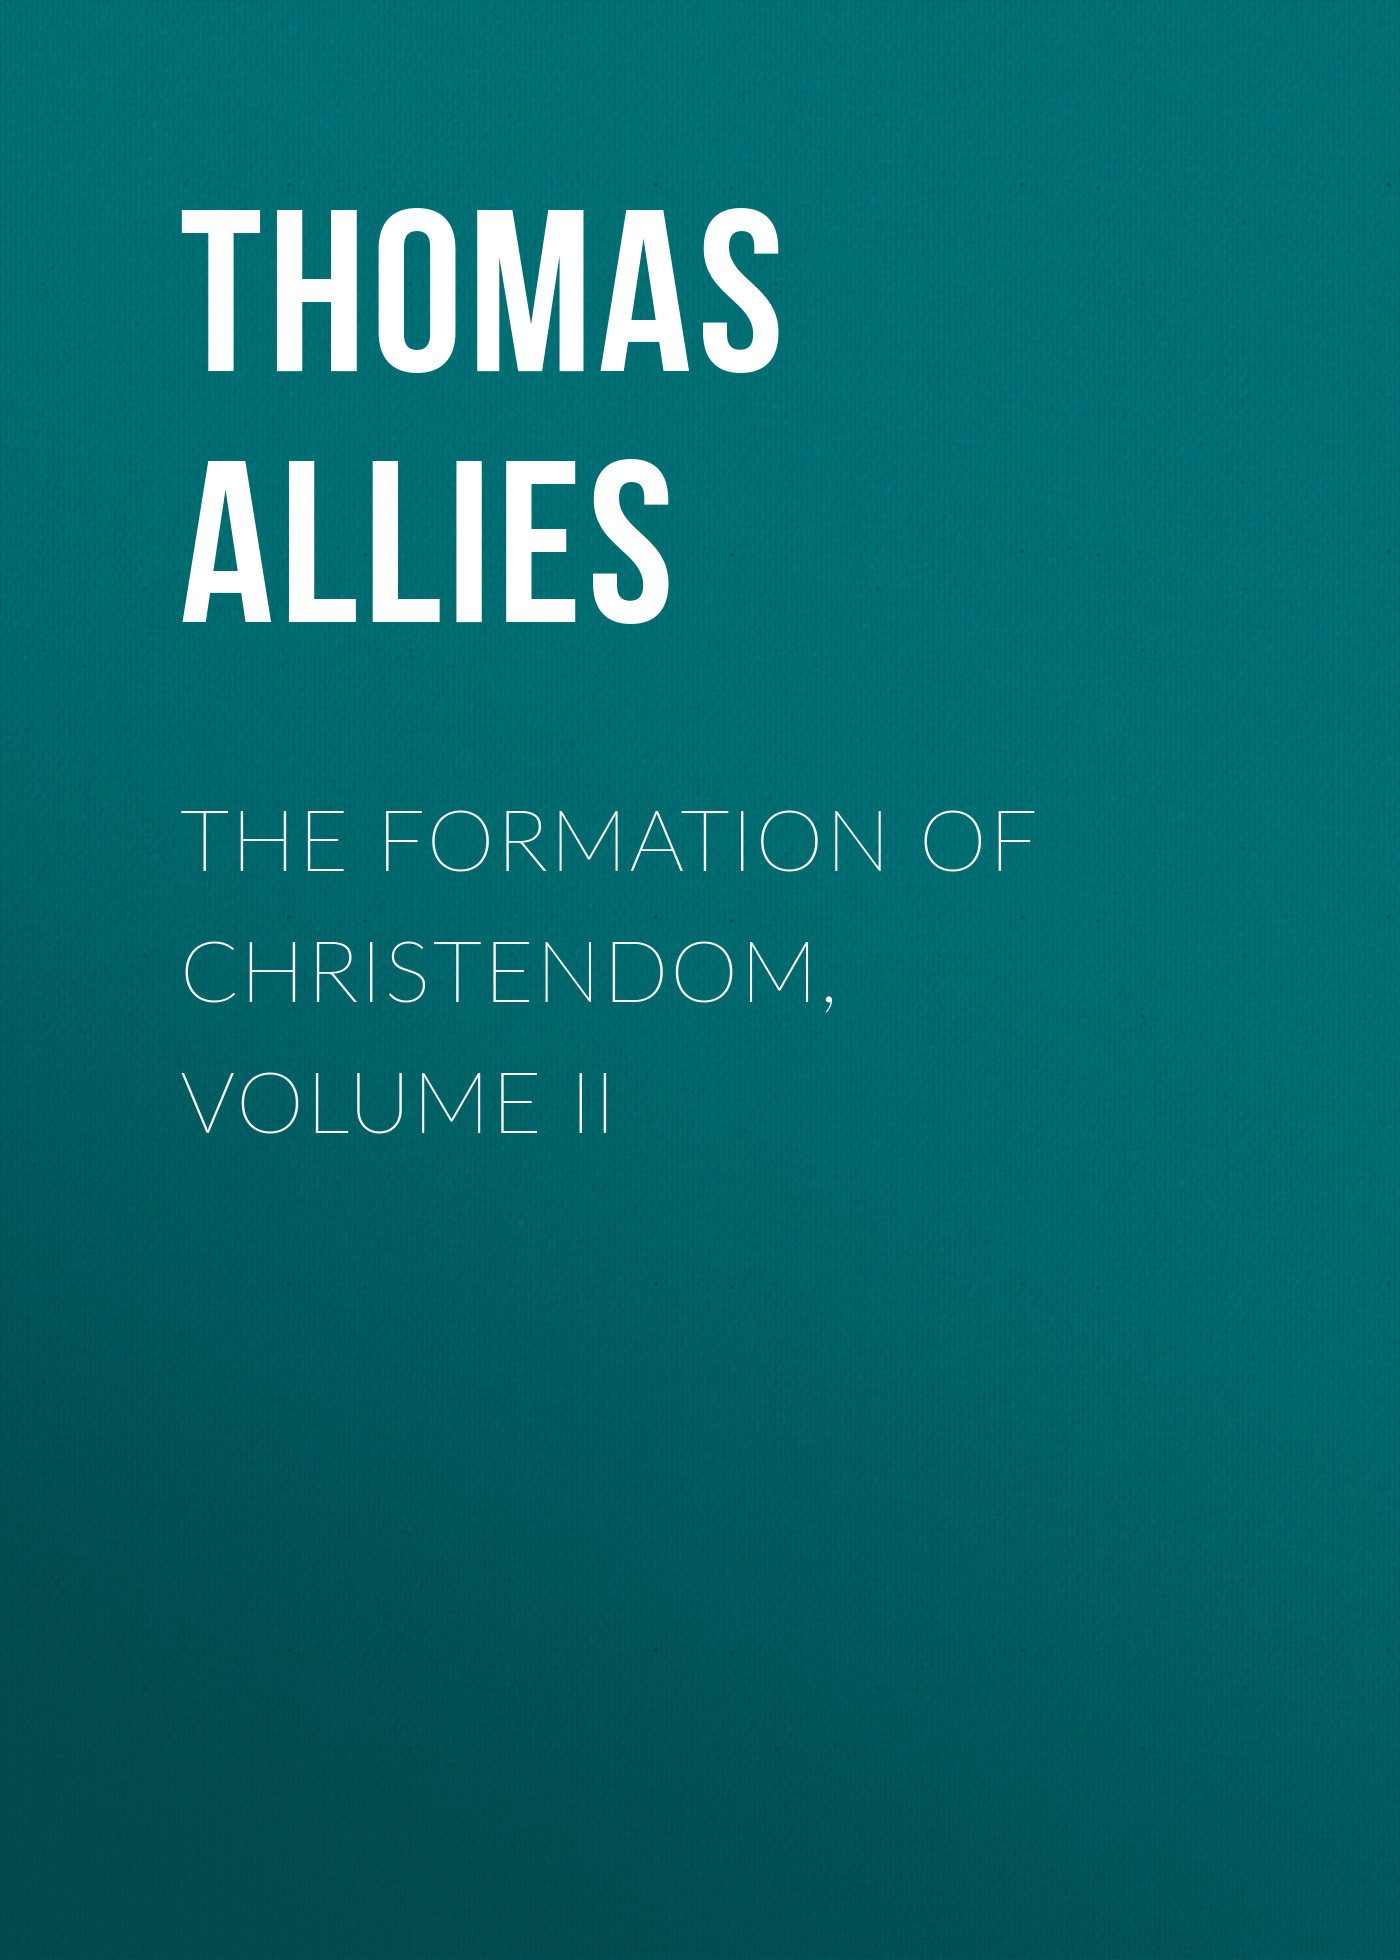 Allies Thomas William The Formation of Christendom, Volume II цена